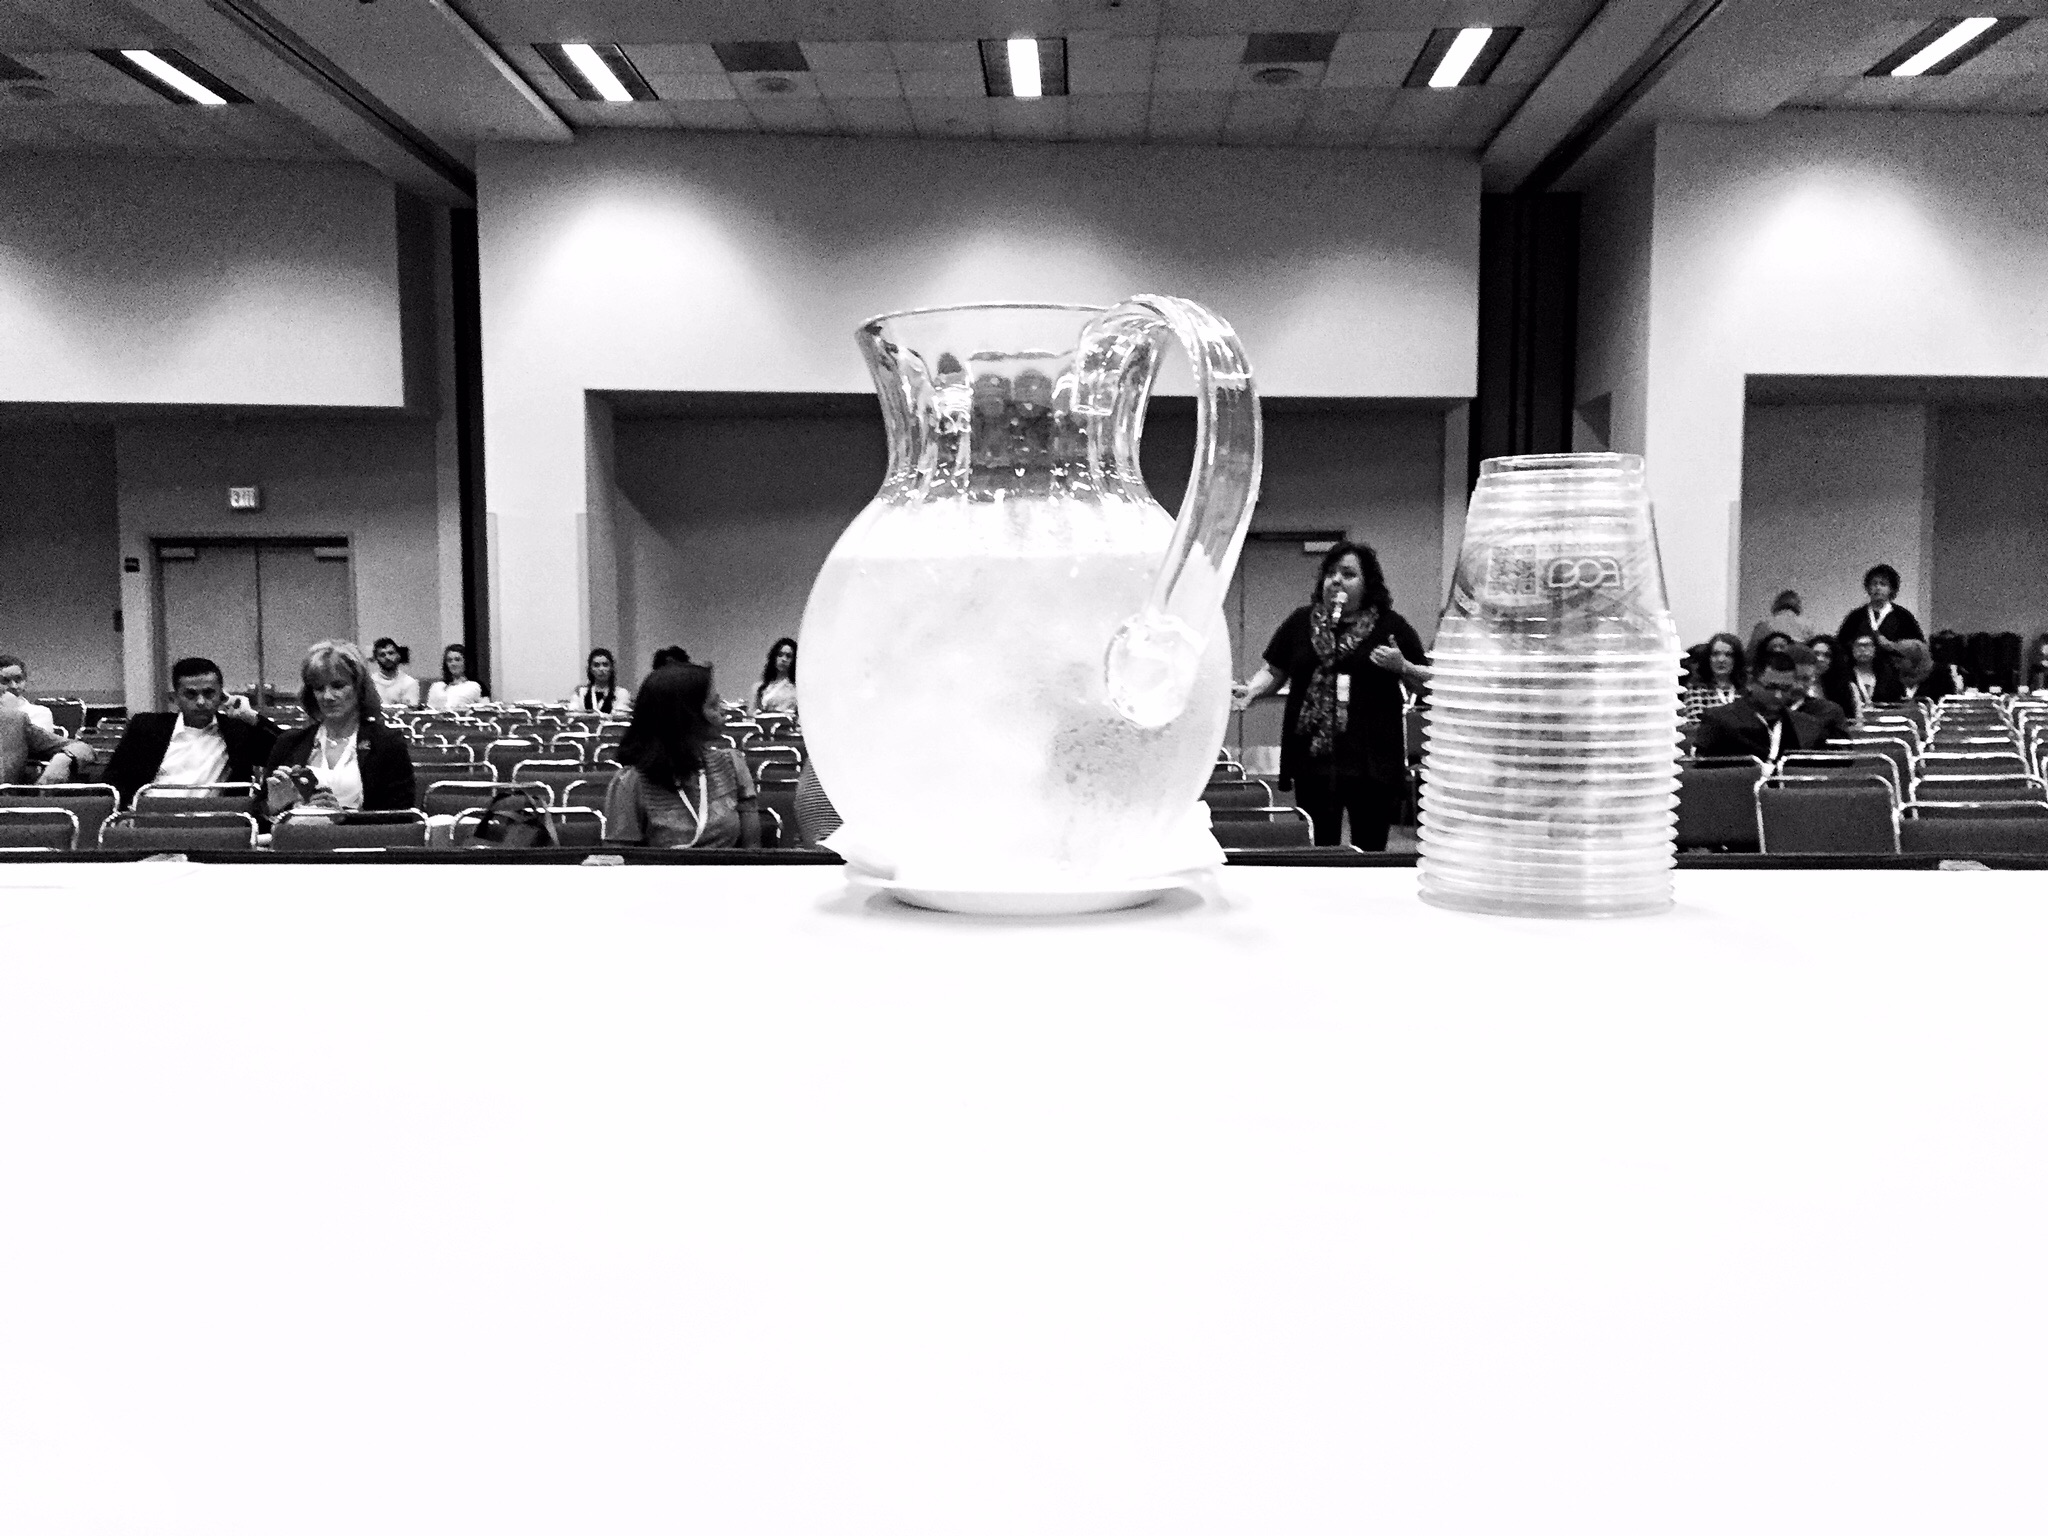 Sitting and waiting for the presentation to begin, a nervous moment for me. The water was great by the way.